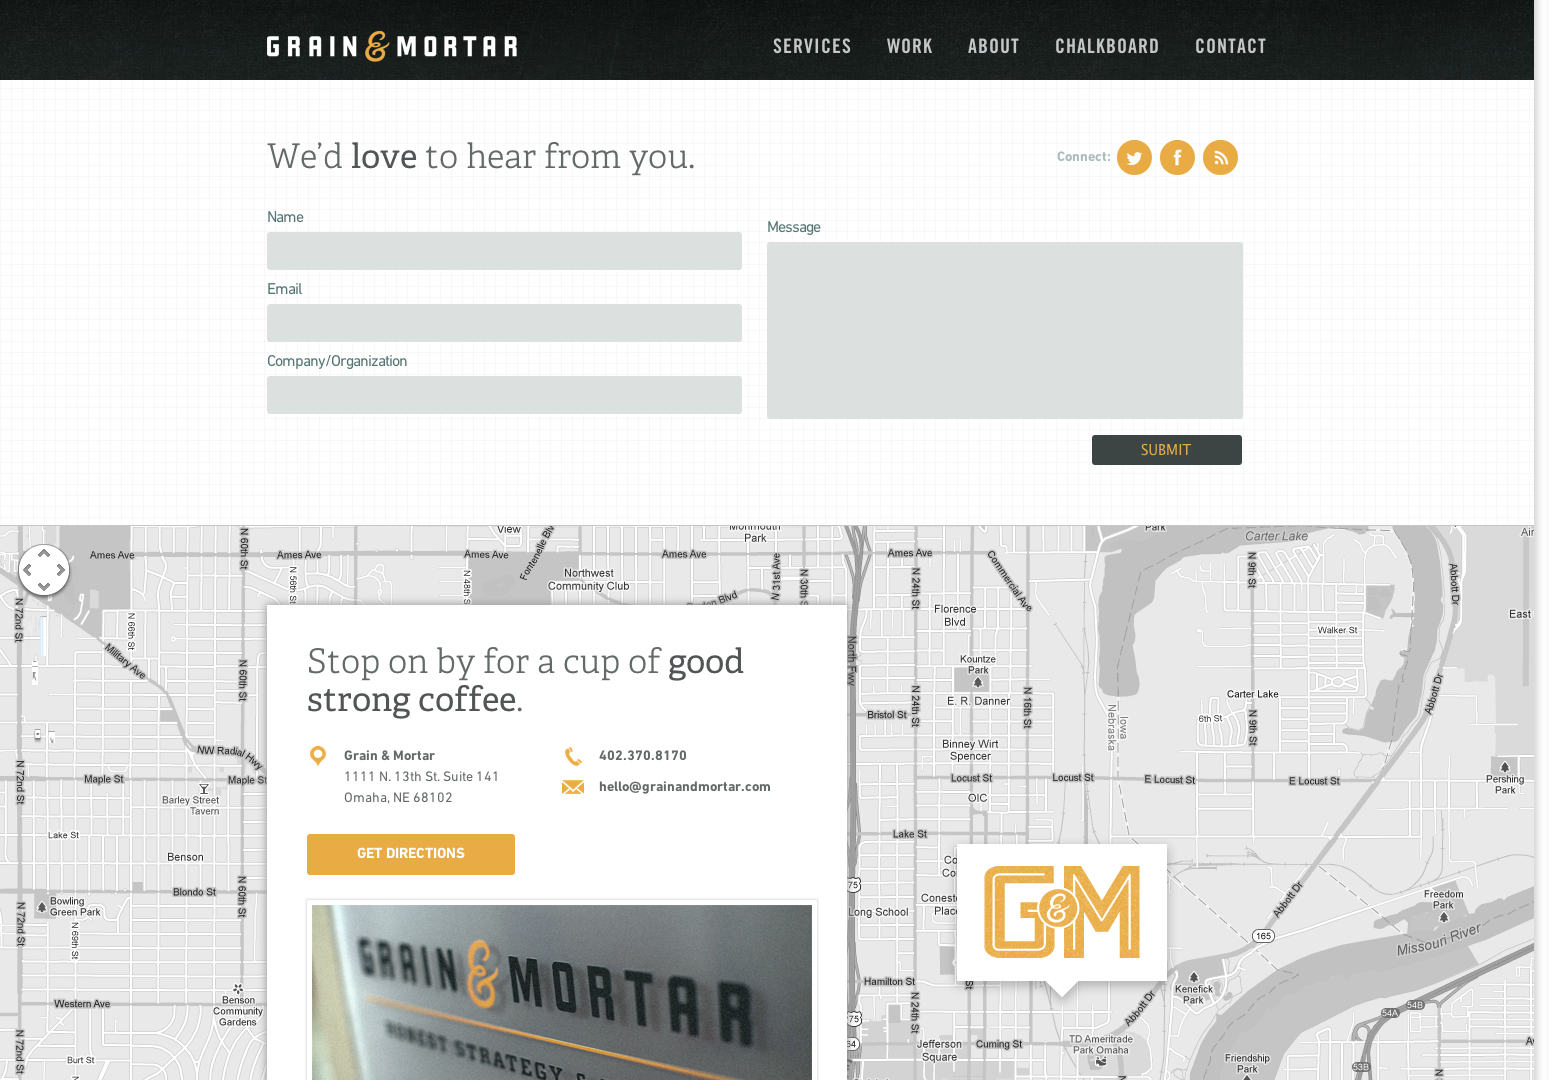 Contact Grain & Mortar | Grain & Mortar | Strategy + Branding + Design